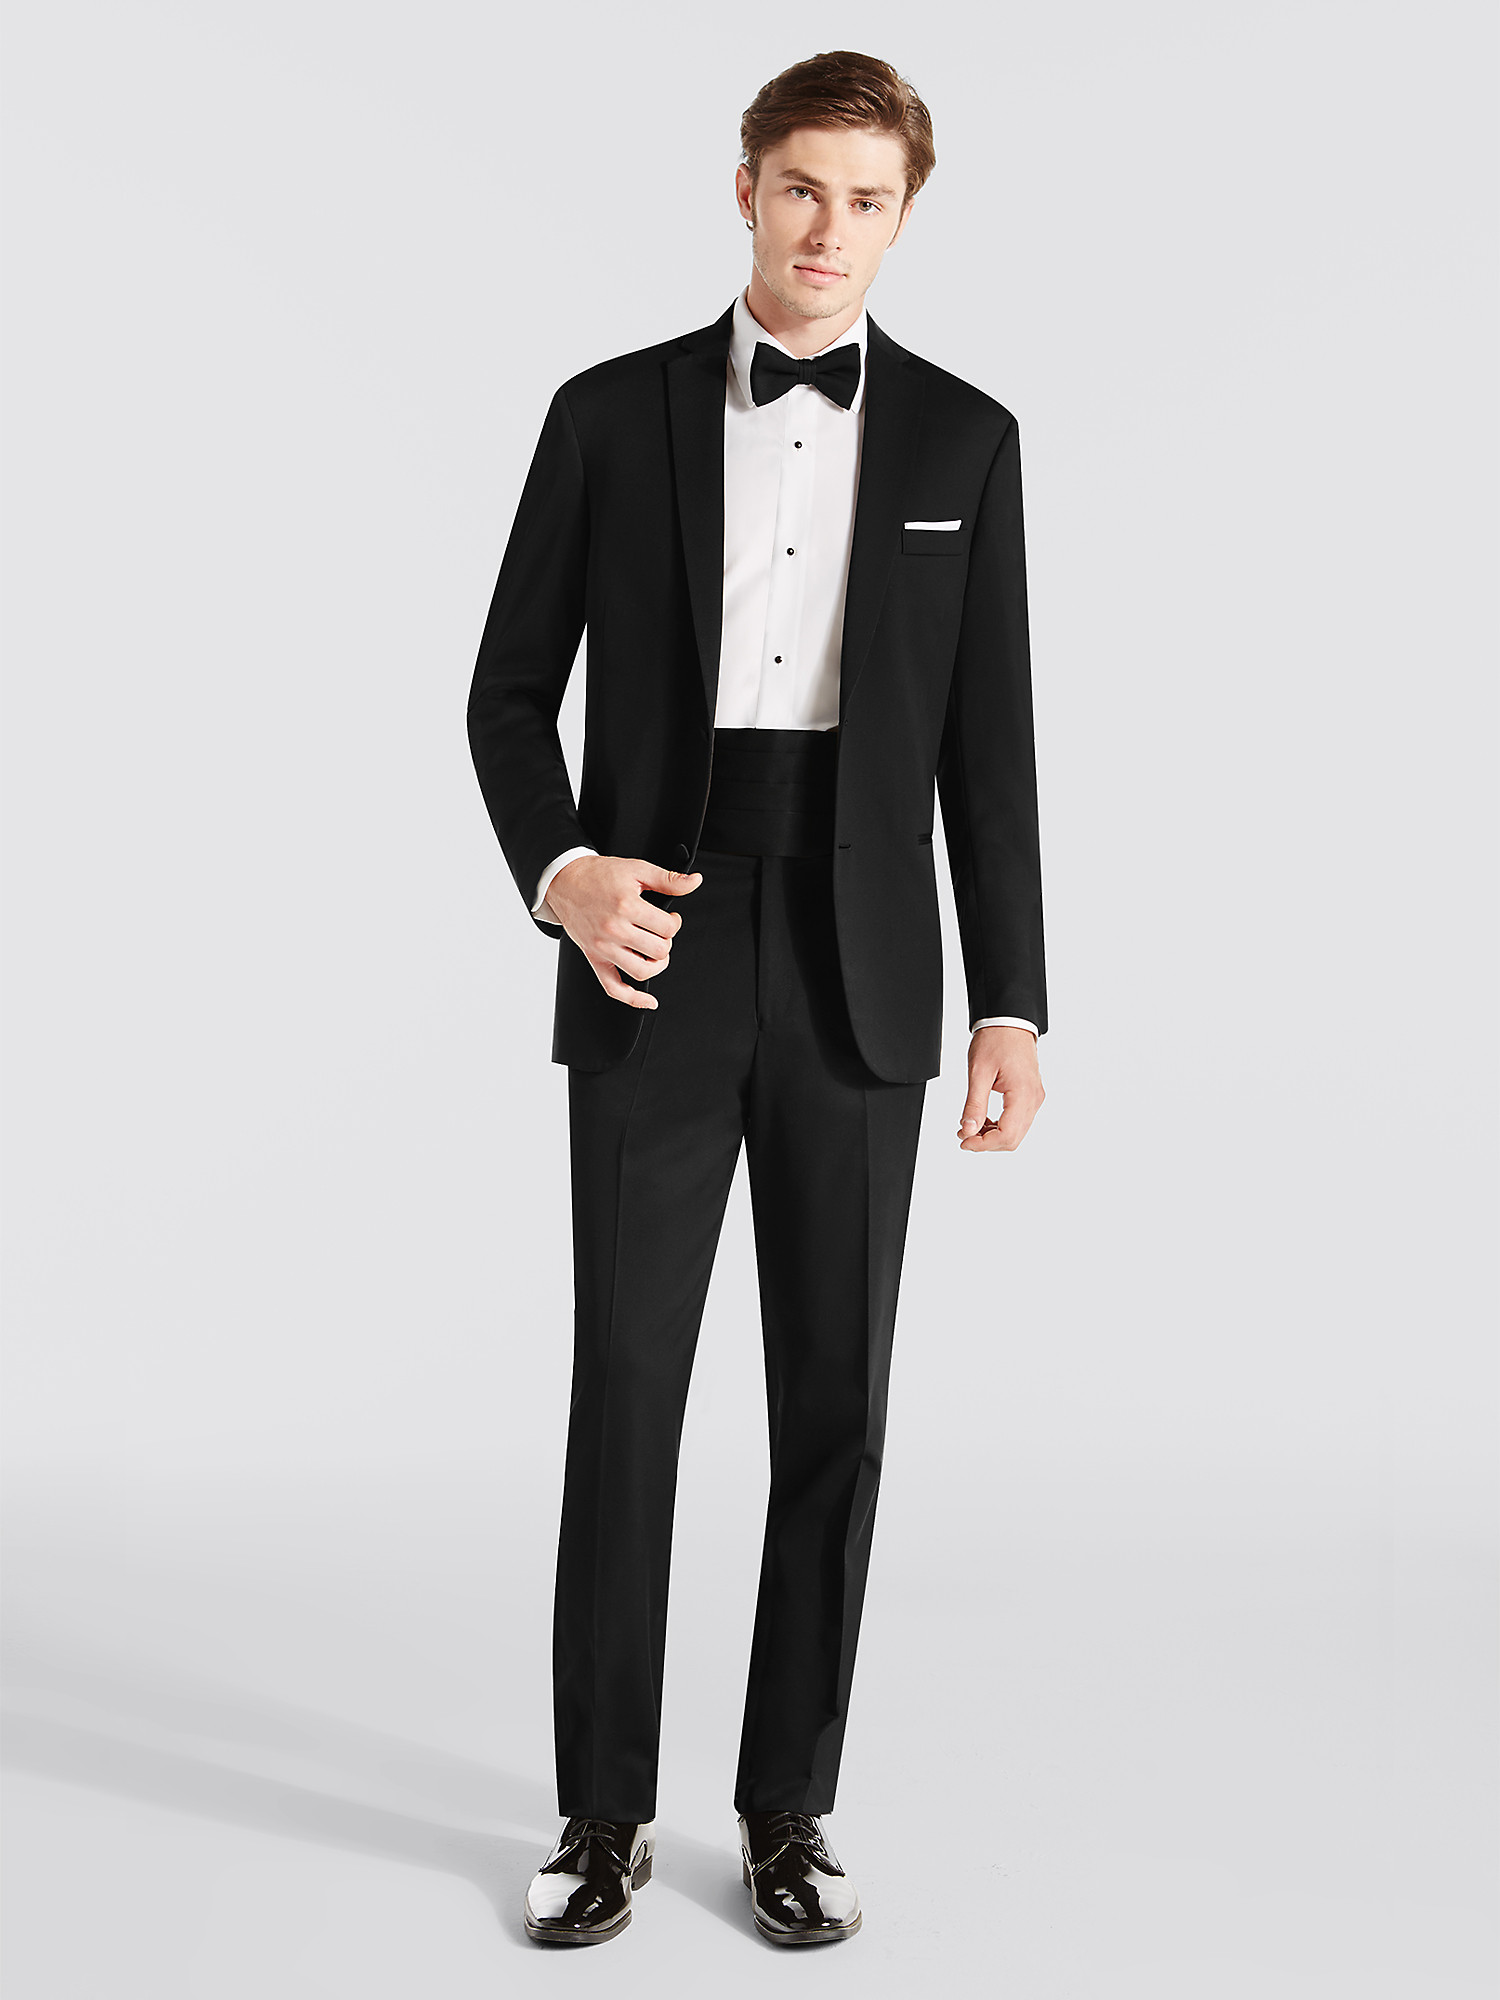 black tuxedo | black by vera wang tuxedo | tuxedo rental | menu0027s wearhouse SGGODFX